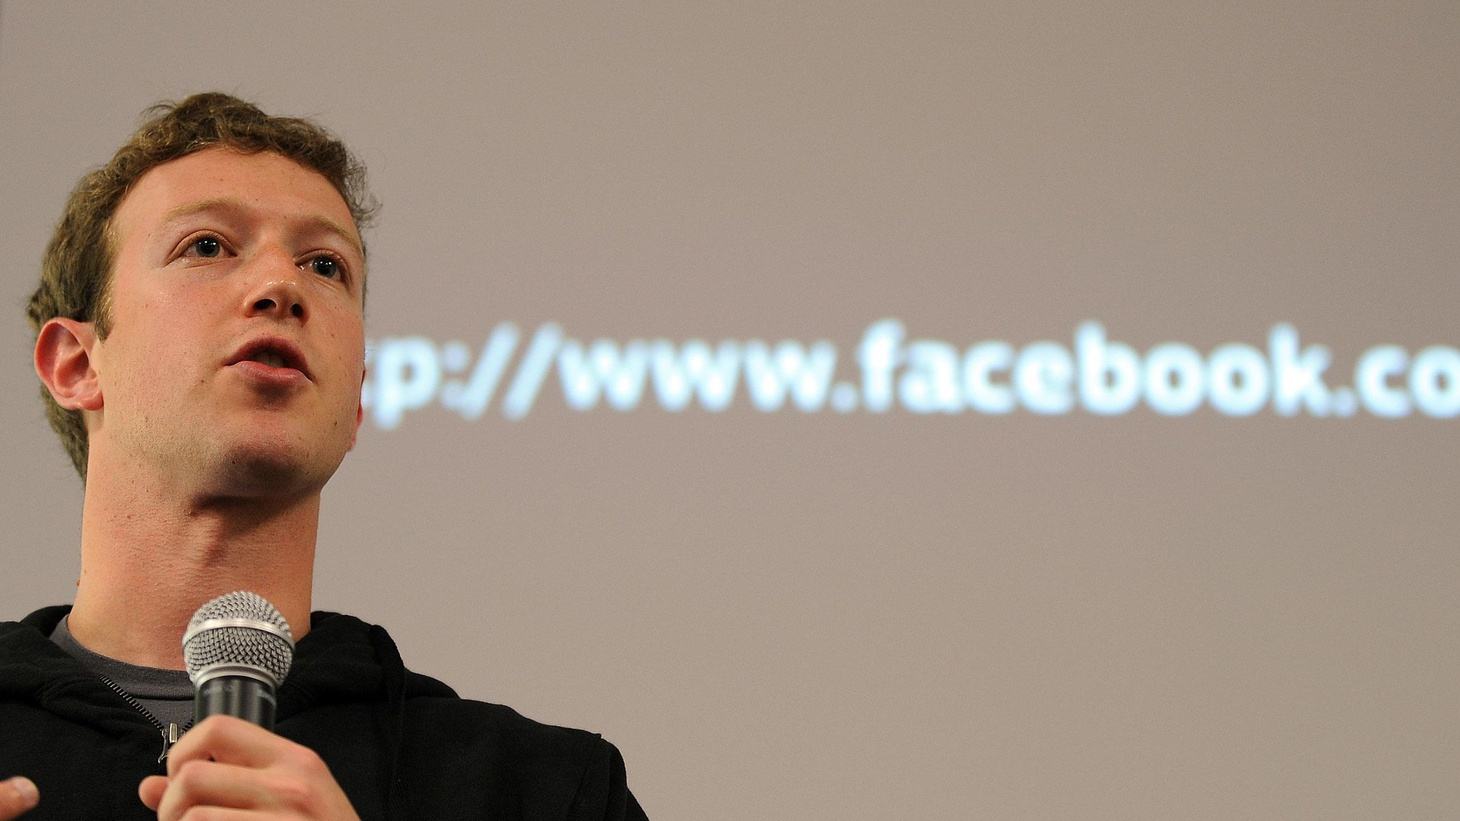 """This year's film about the founder of Facebook and the suicide of a student whose sexual orientation was revealed online have focused attention on Social Networking. We talk about what it is and how it's changing the real world as well as the virtual world. Also, the BCS championship and college bowl games, and America as a """"patchwork nation."""""""